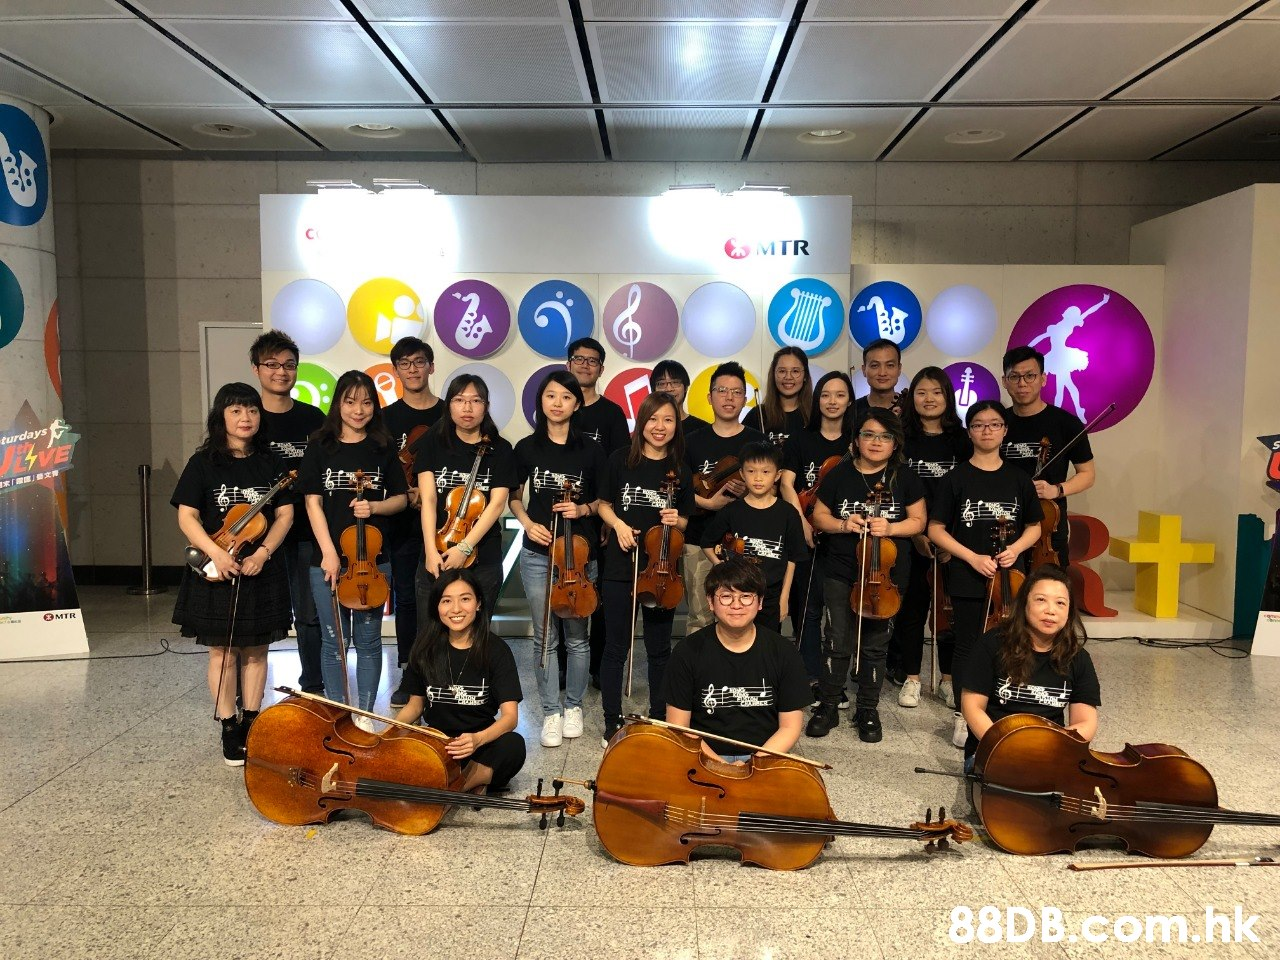 MTR turdays OMTR %23 . hk  Social group,Youth,Music,Event,Musician